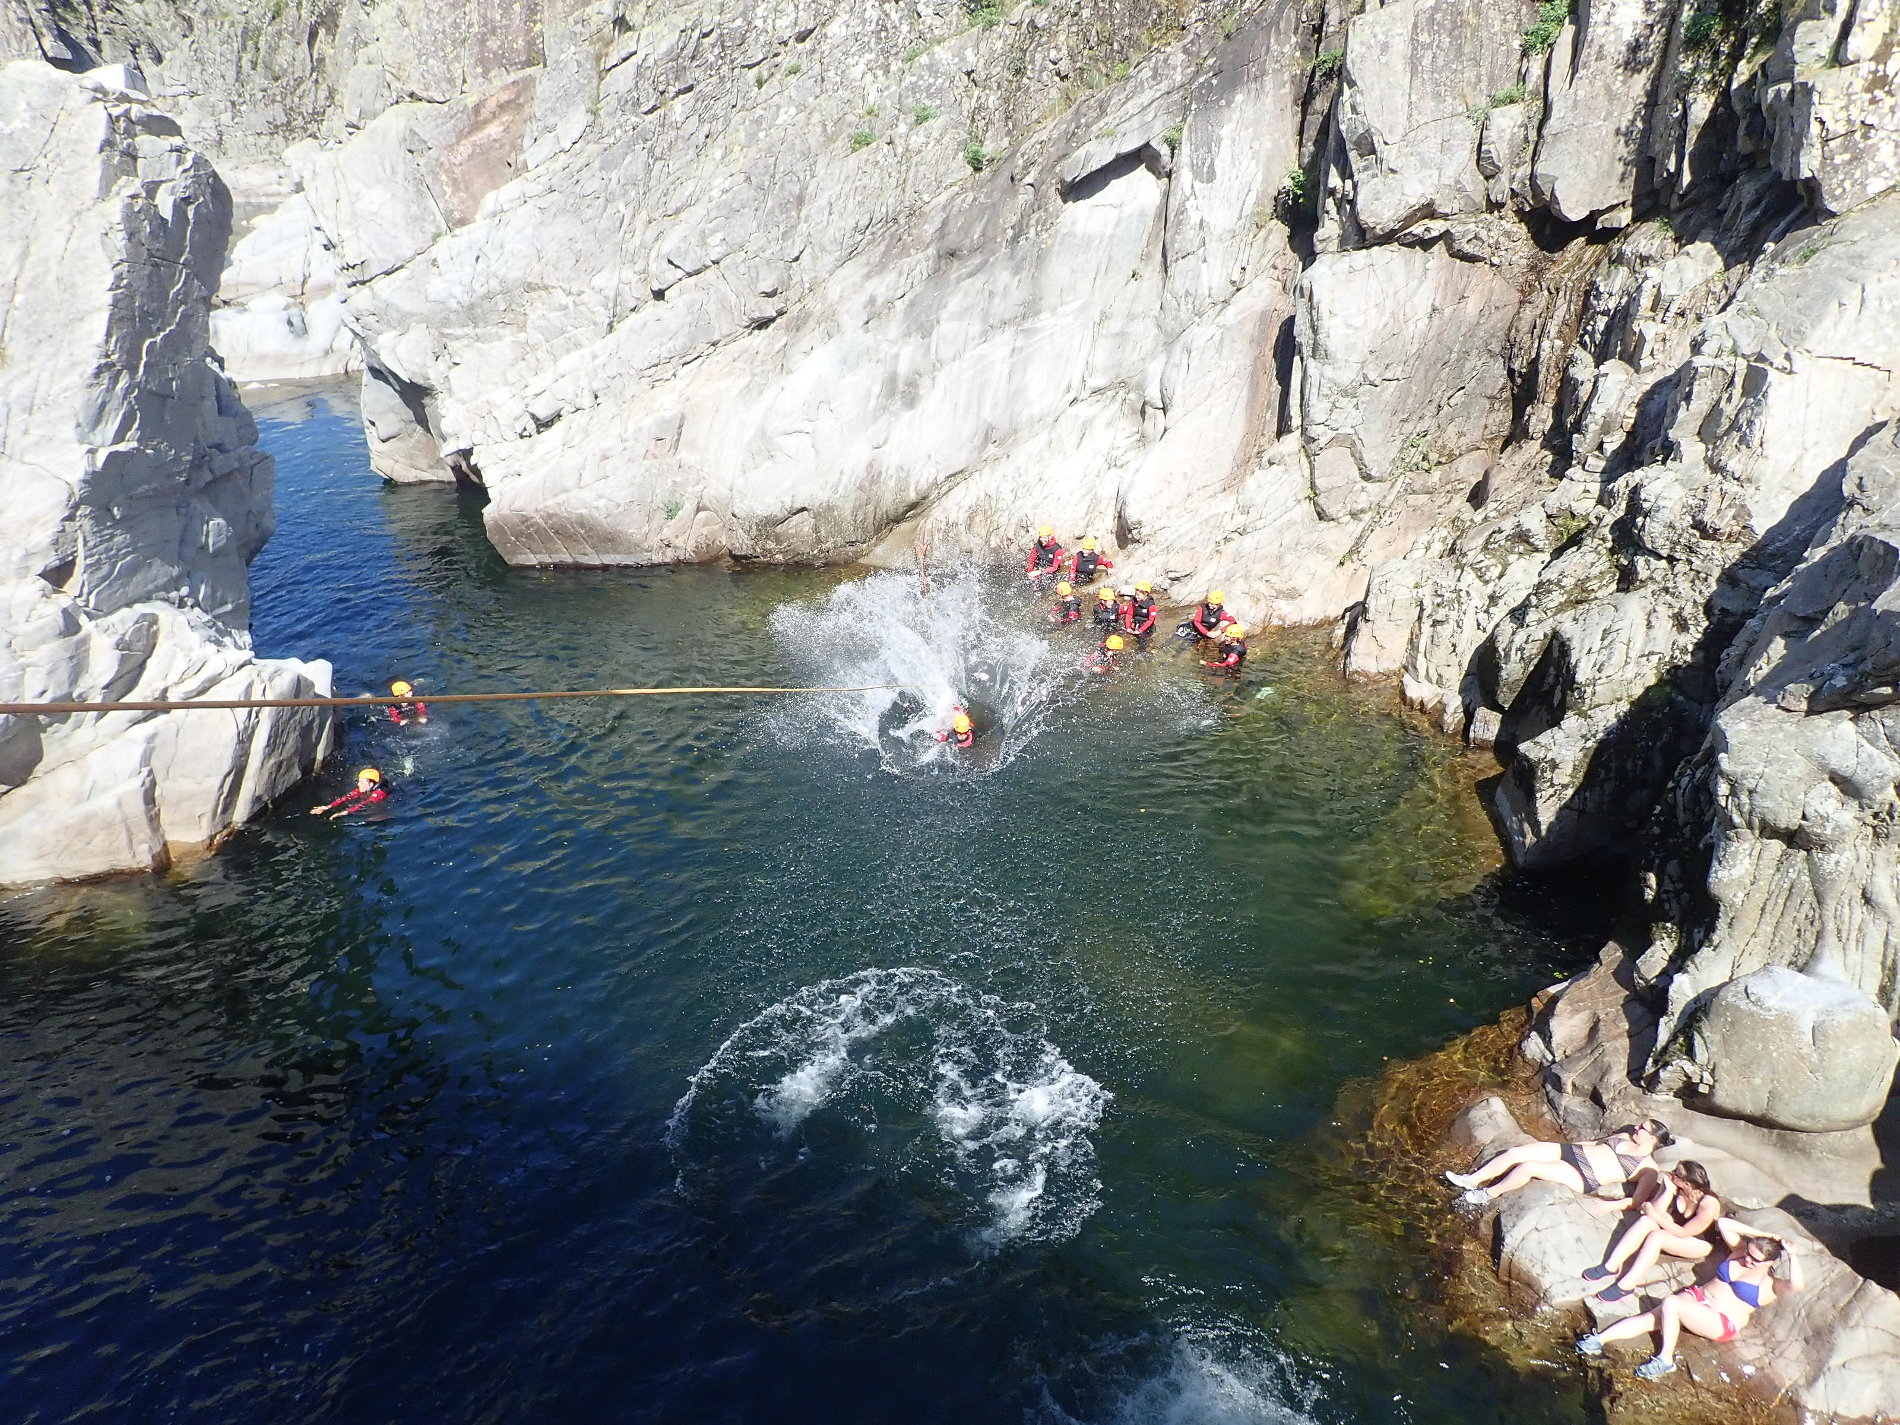 canyoning-soucy-anduze-gard-cevennes